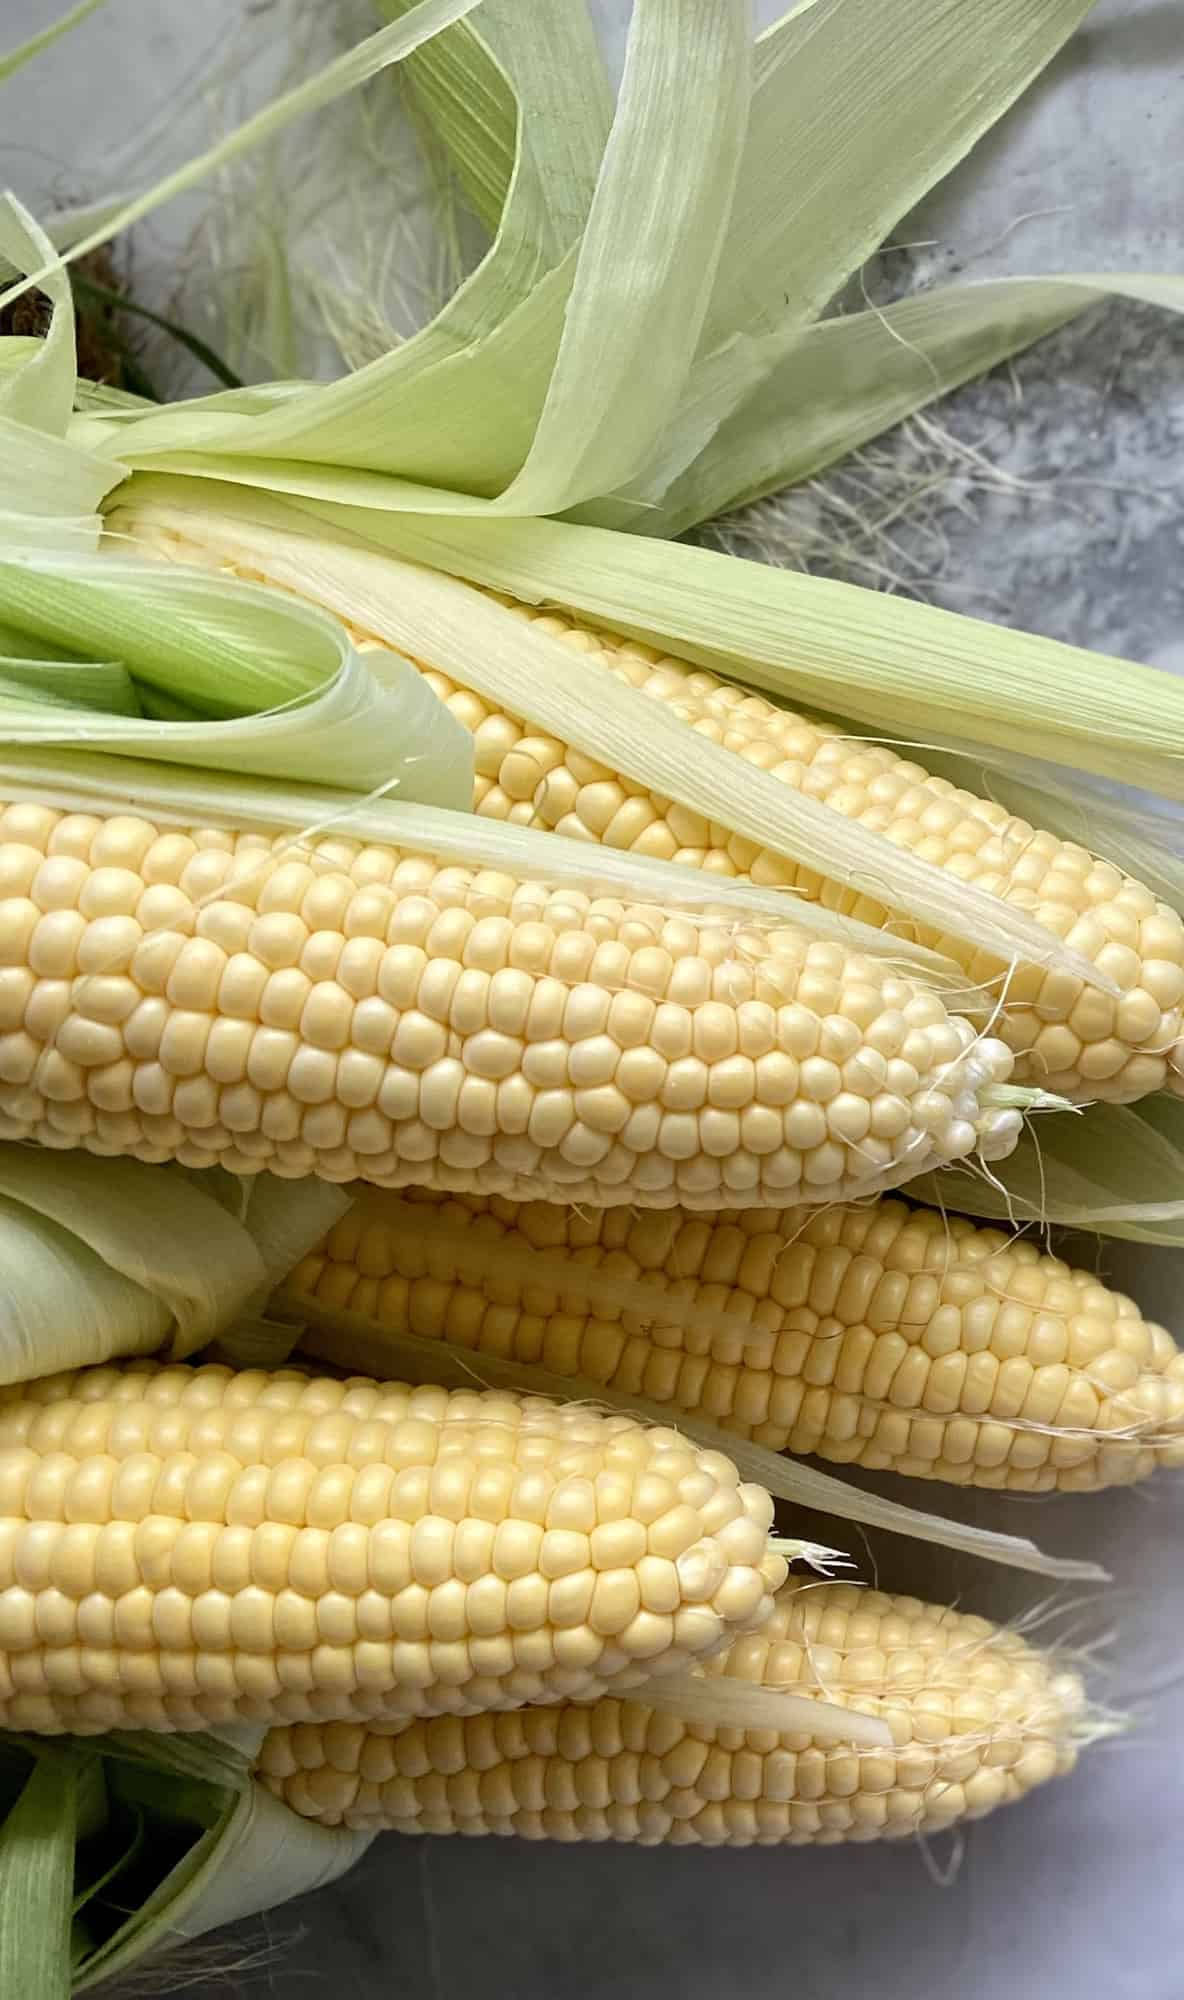 Five ears of corn on the cob on a marble countertop.